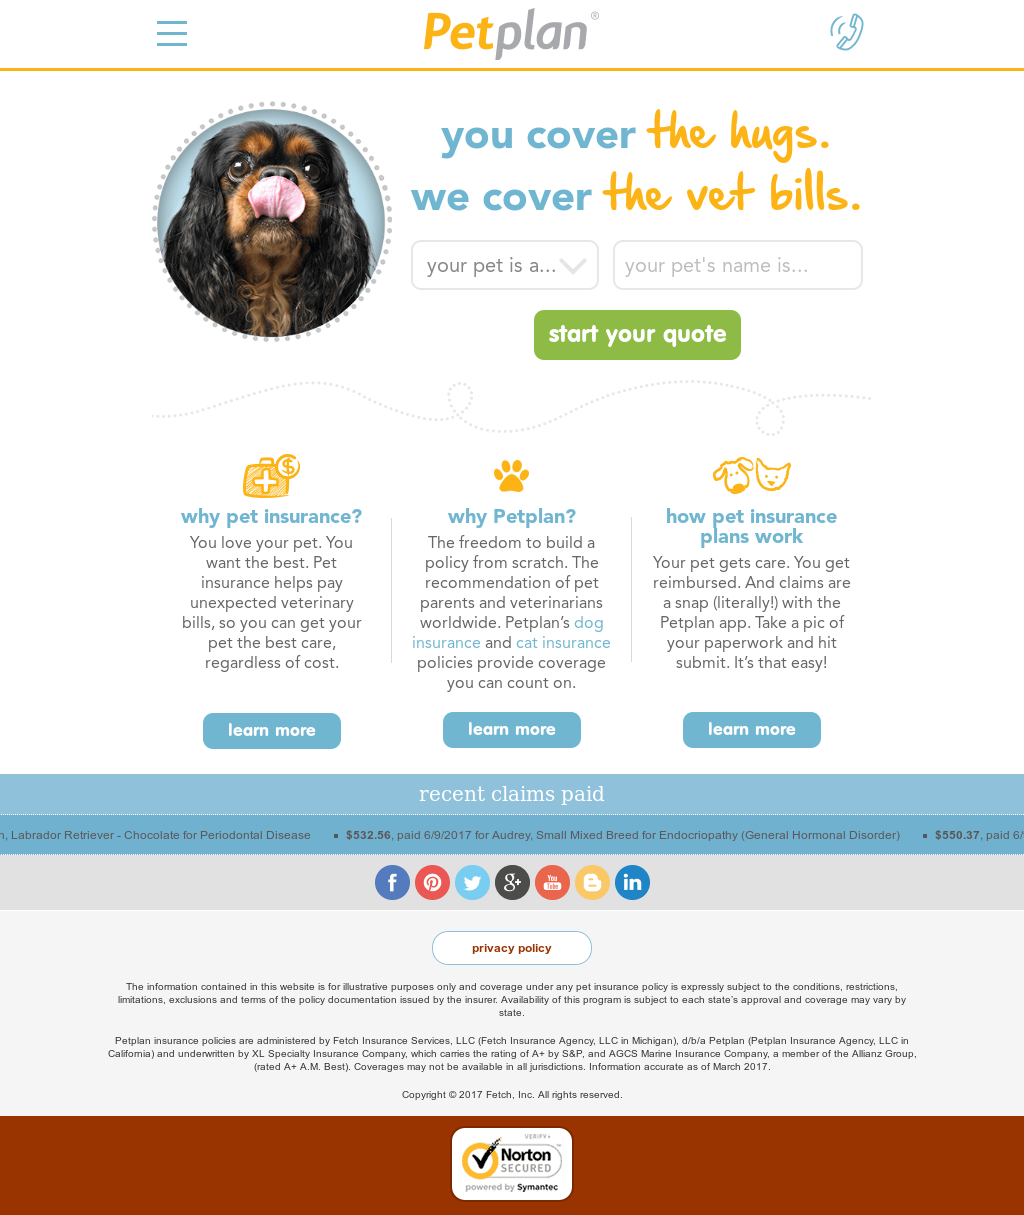 Petplan Competitors, Revenue and Employees - Owler Company